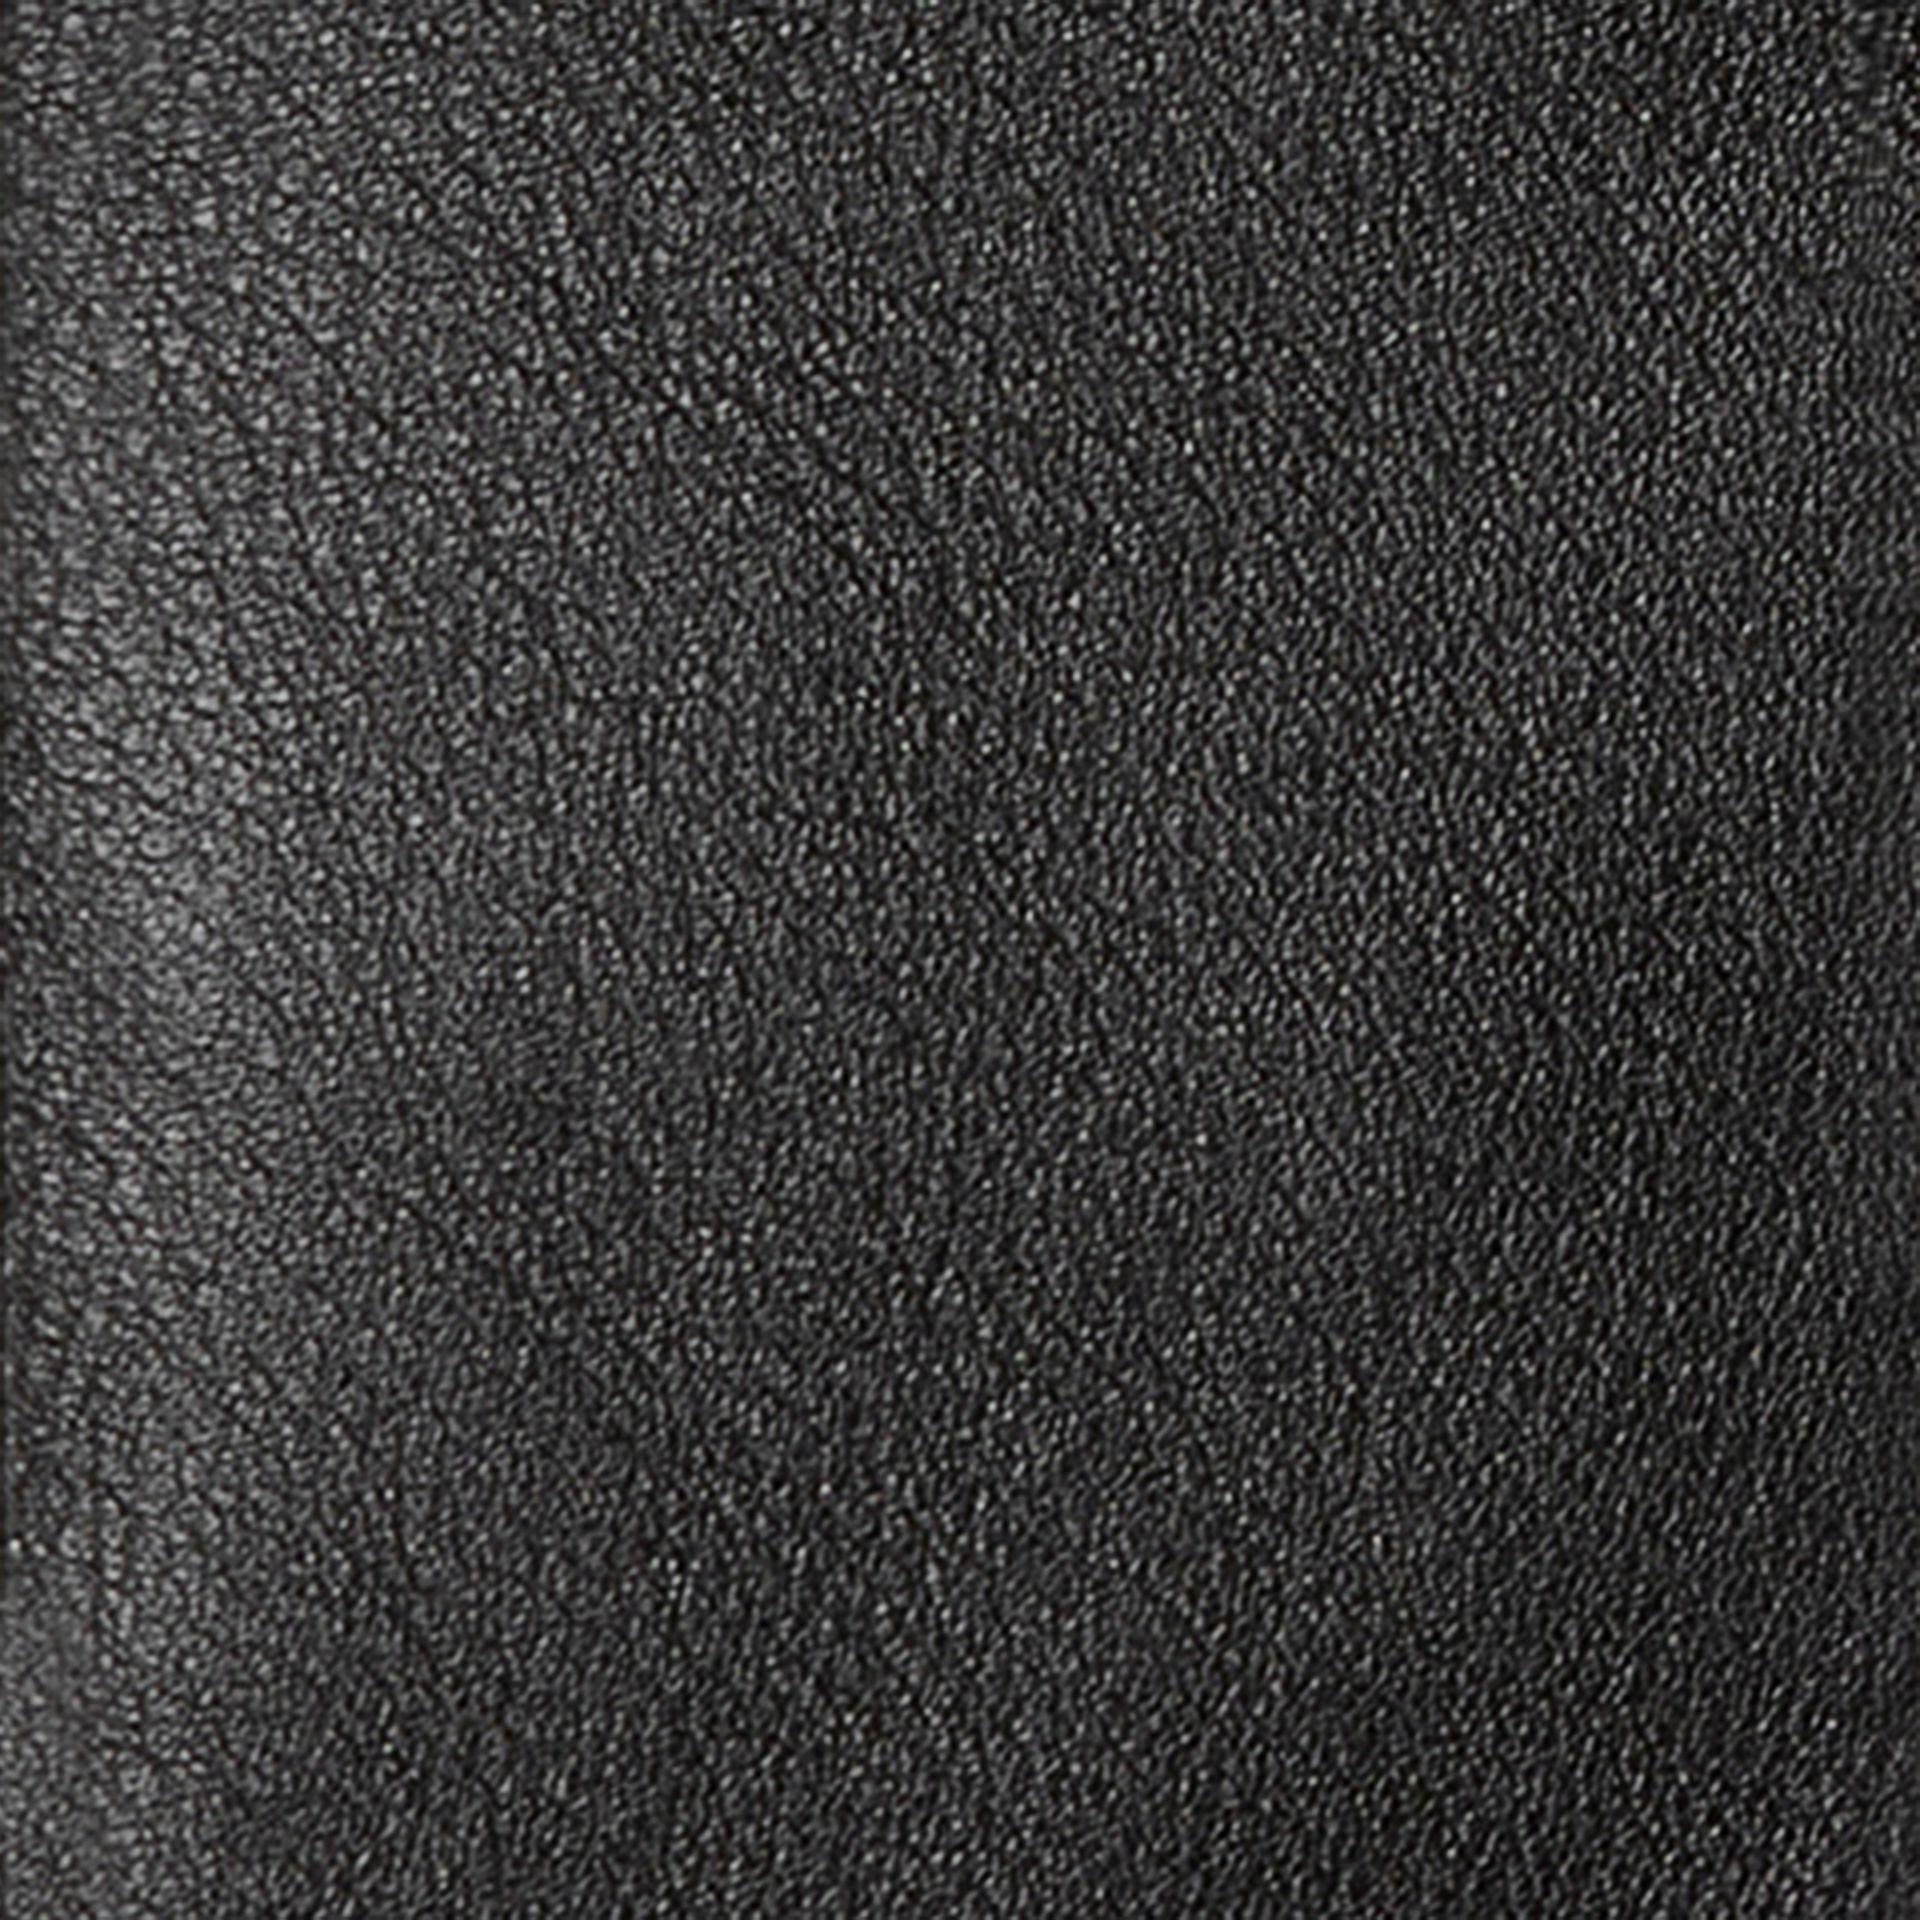 Charcoal/black Horseferry Check Continental Wallet Charcoal/black - gallery image 2